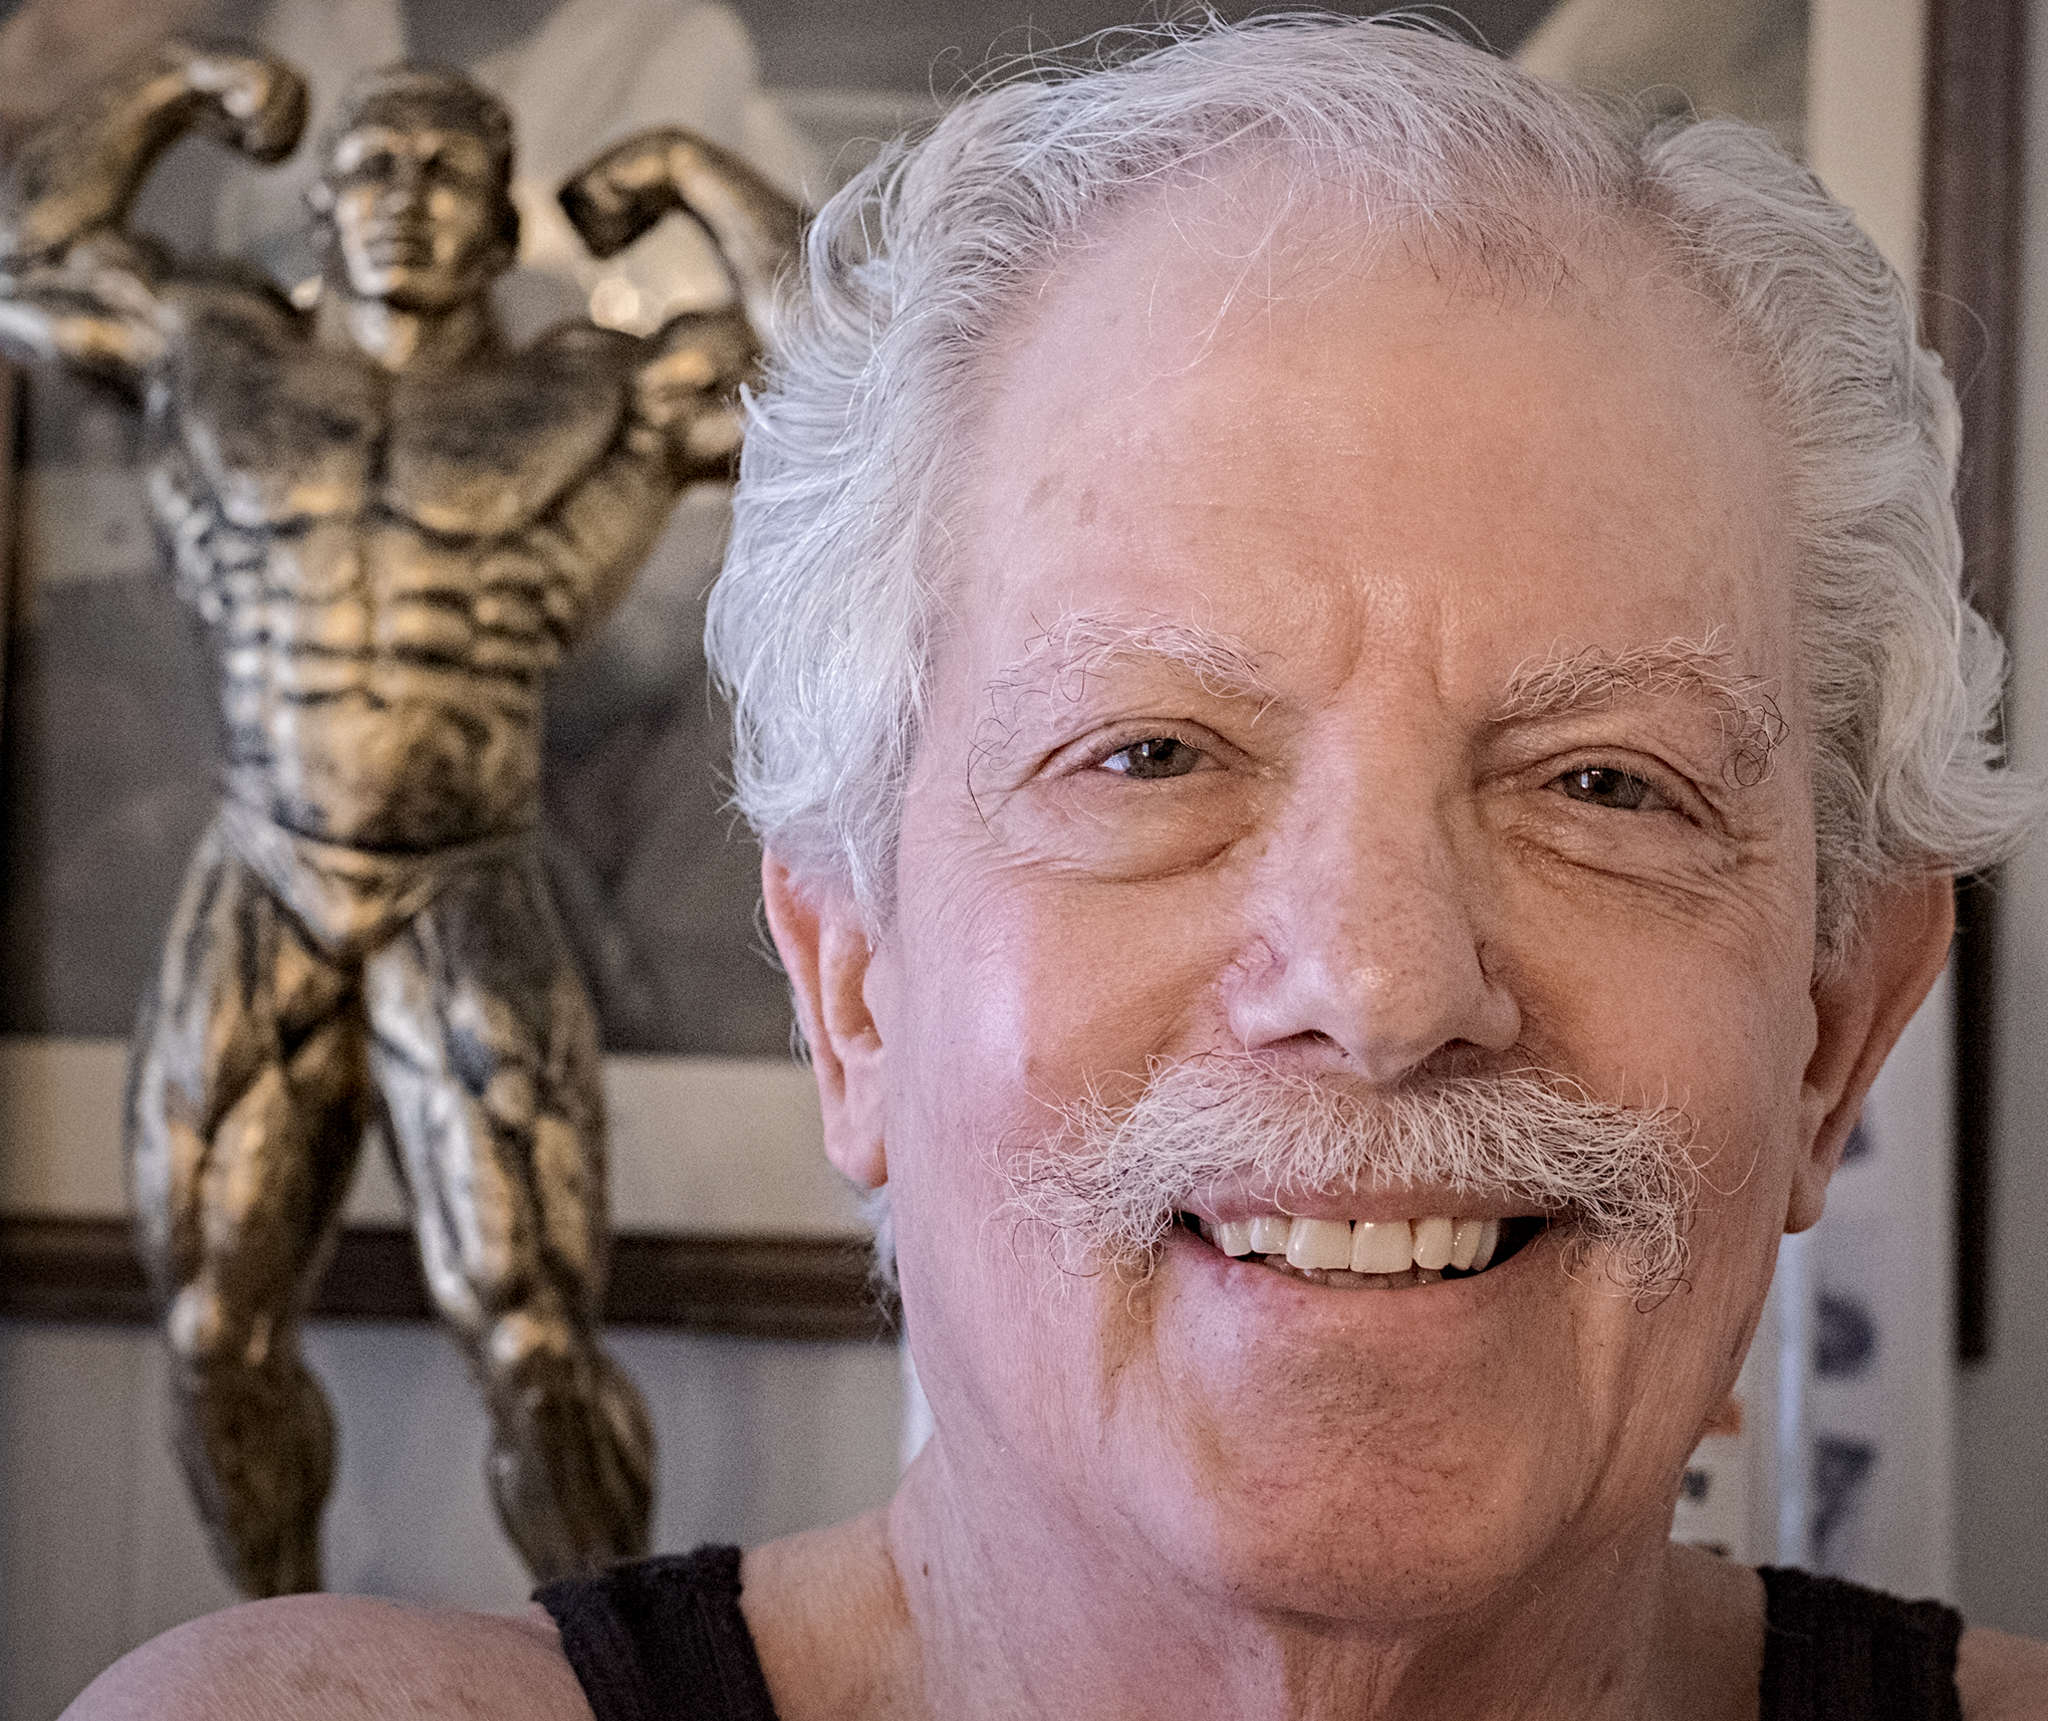 Manayunk strongman Mike Margolis is 74 and can still bend galvanized spikes with his bare hands.